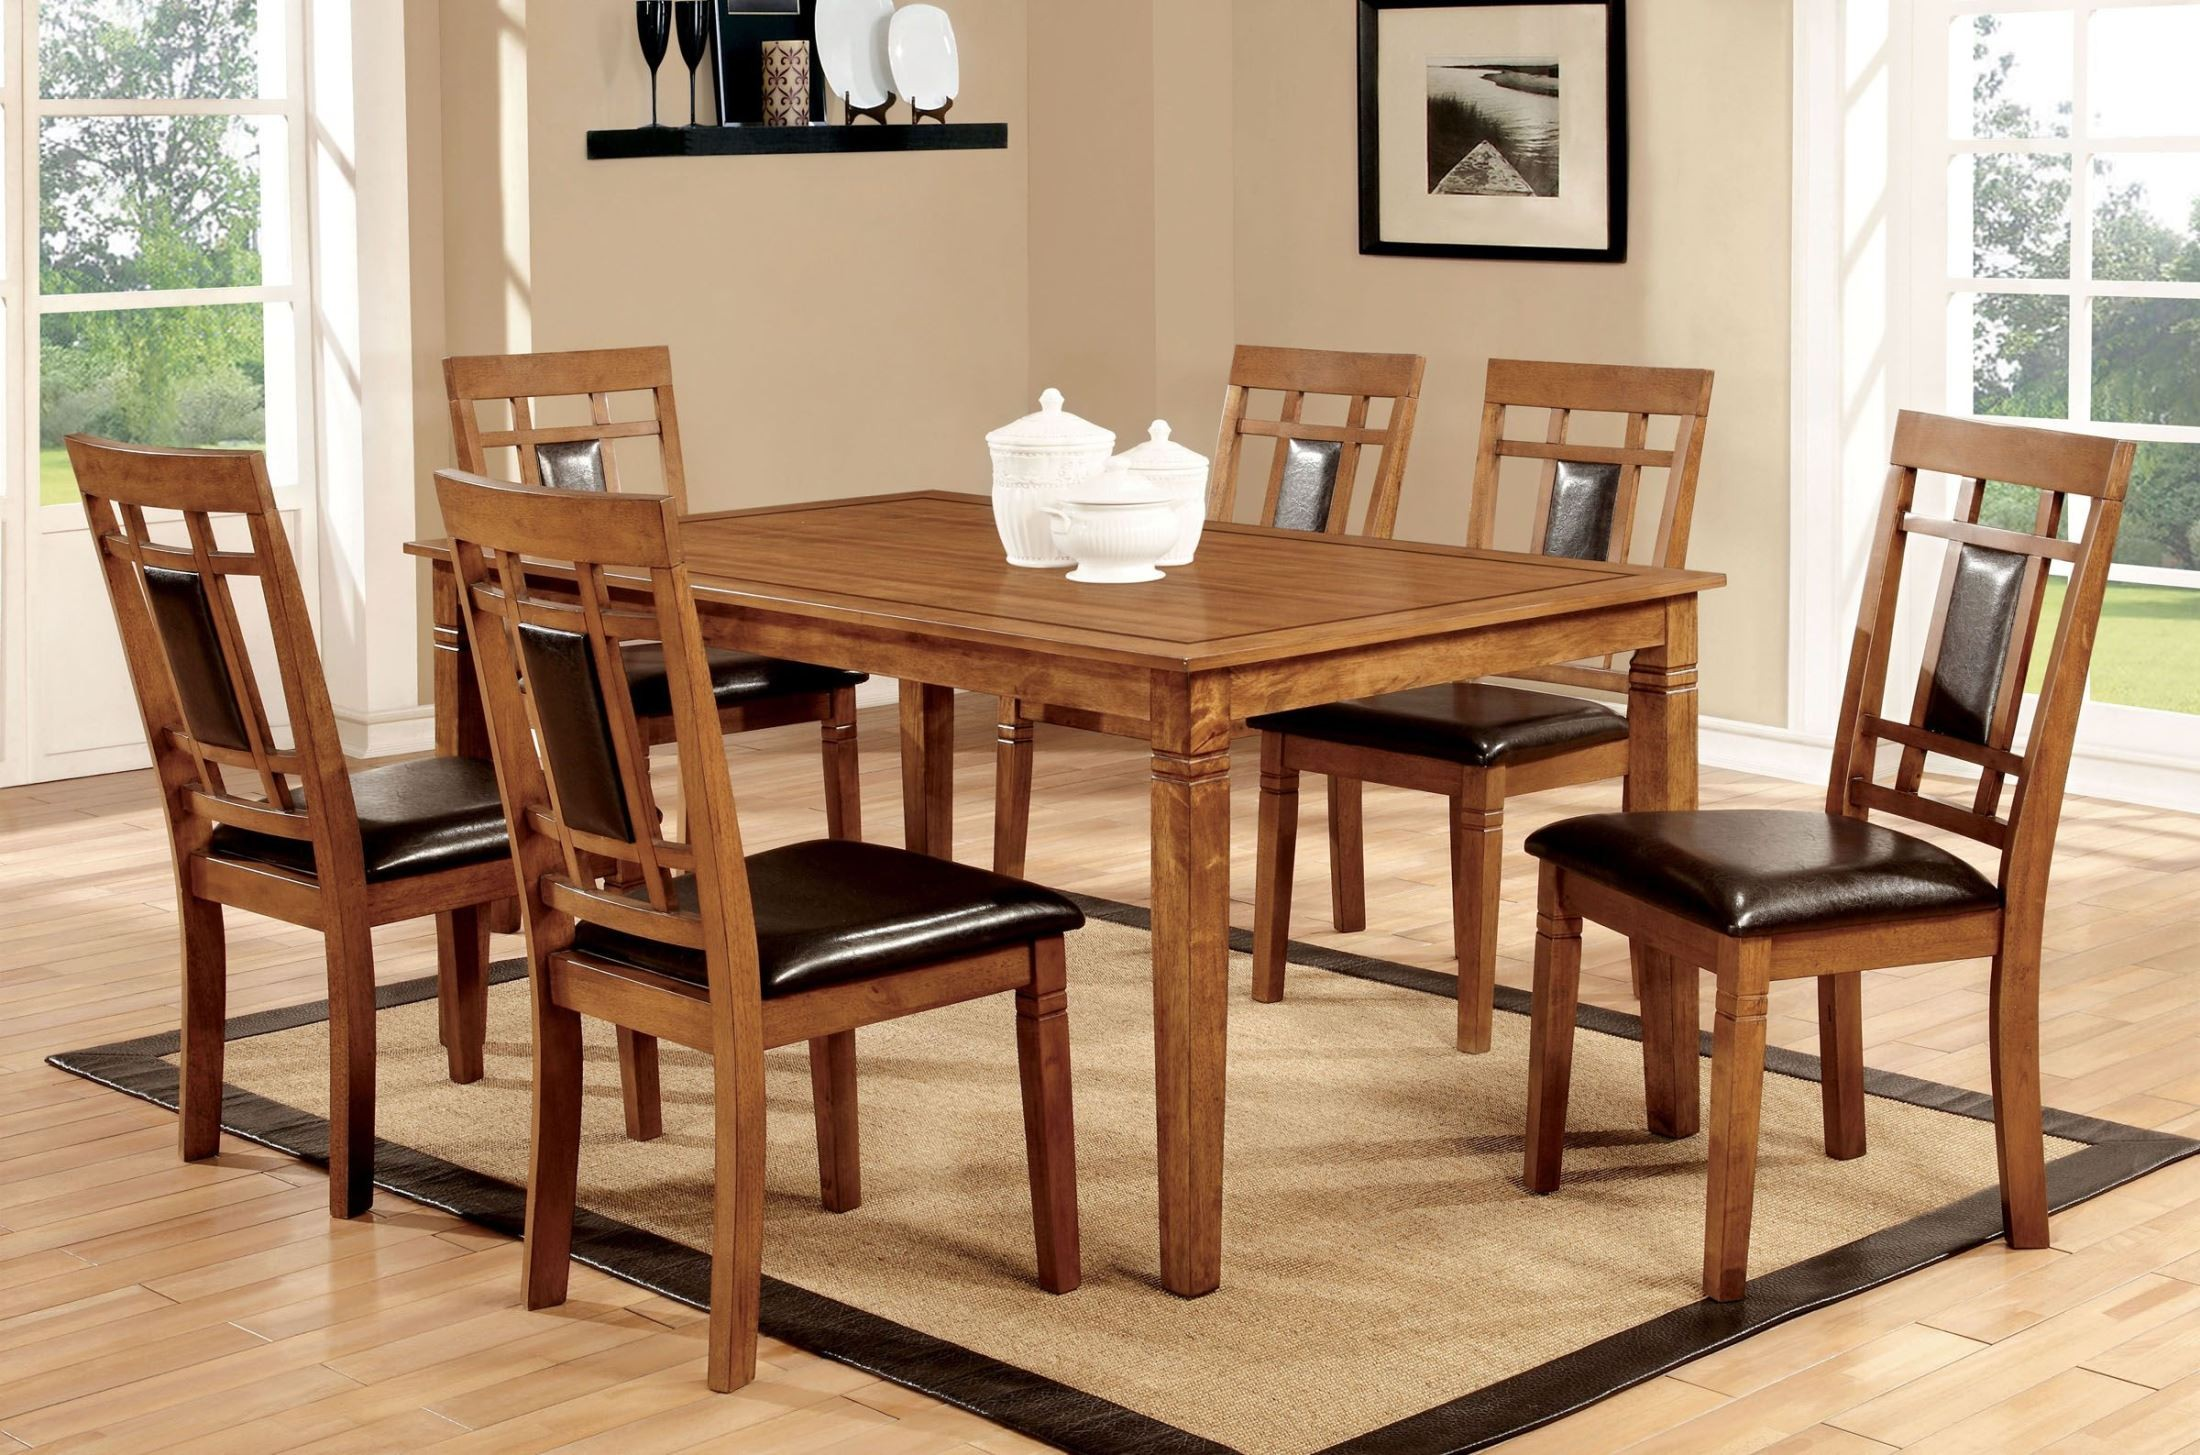 Freeman i light oak 7 piece dining room set from furniture for Dining room t